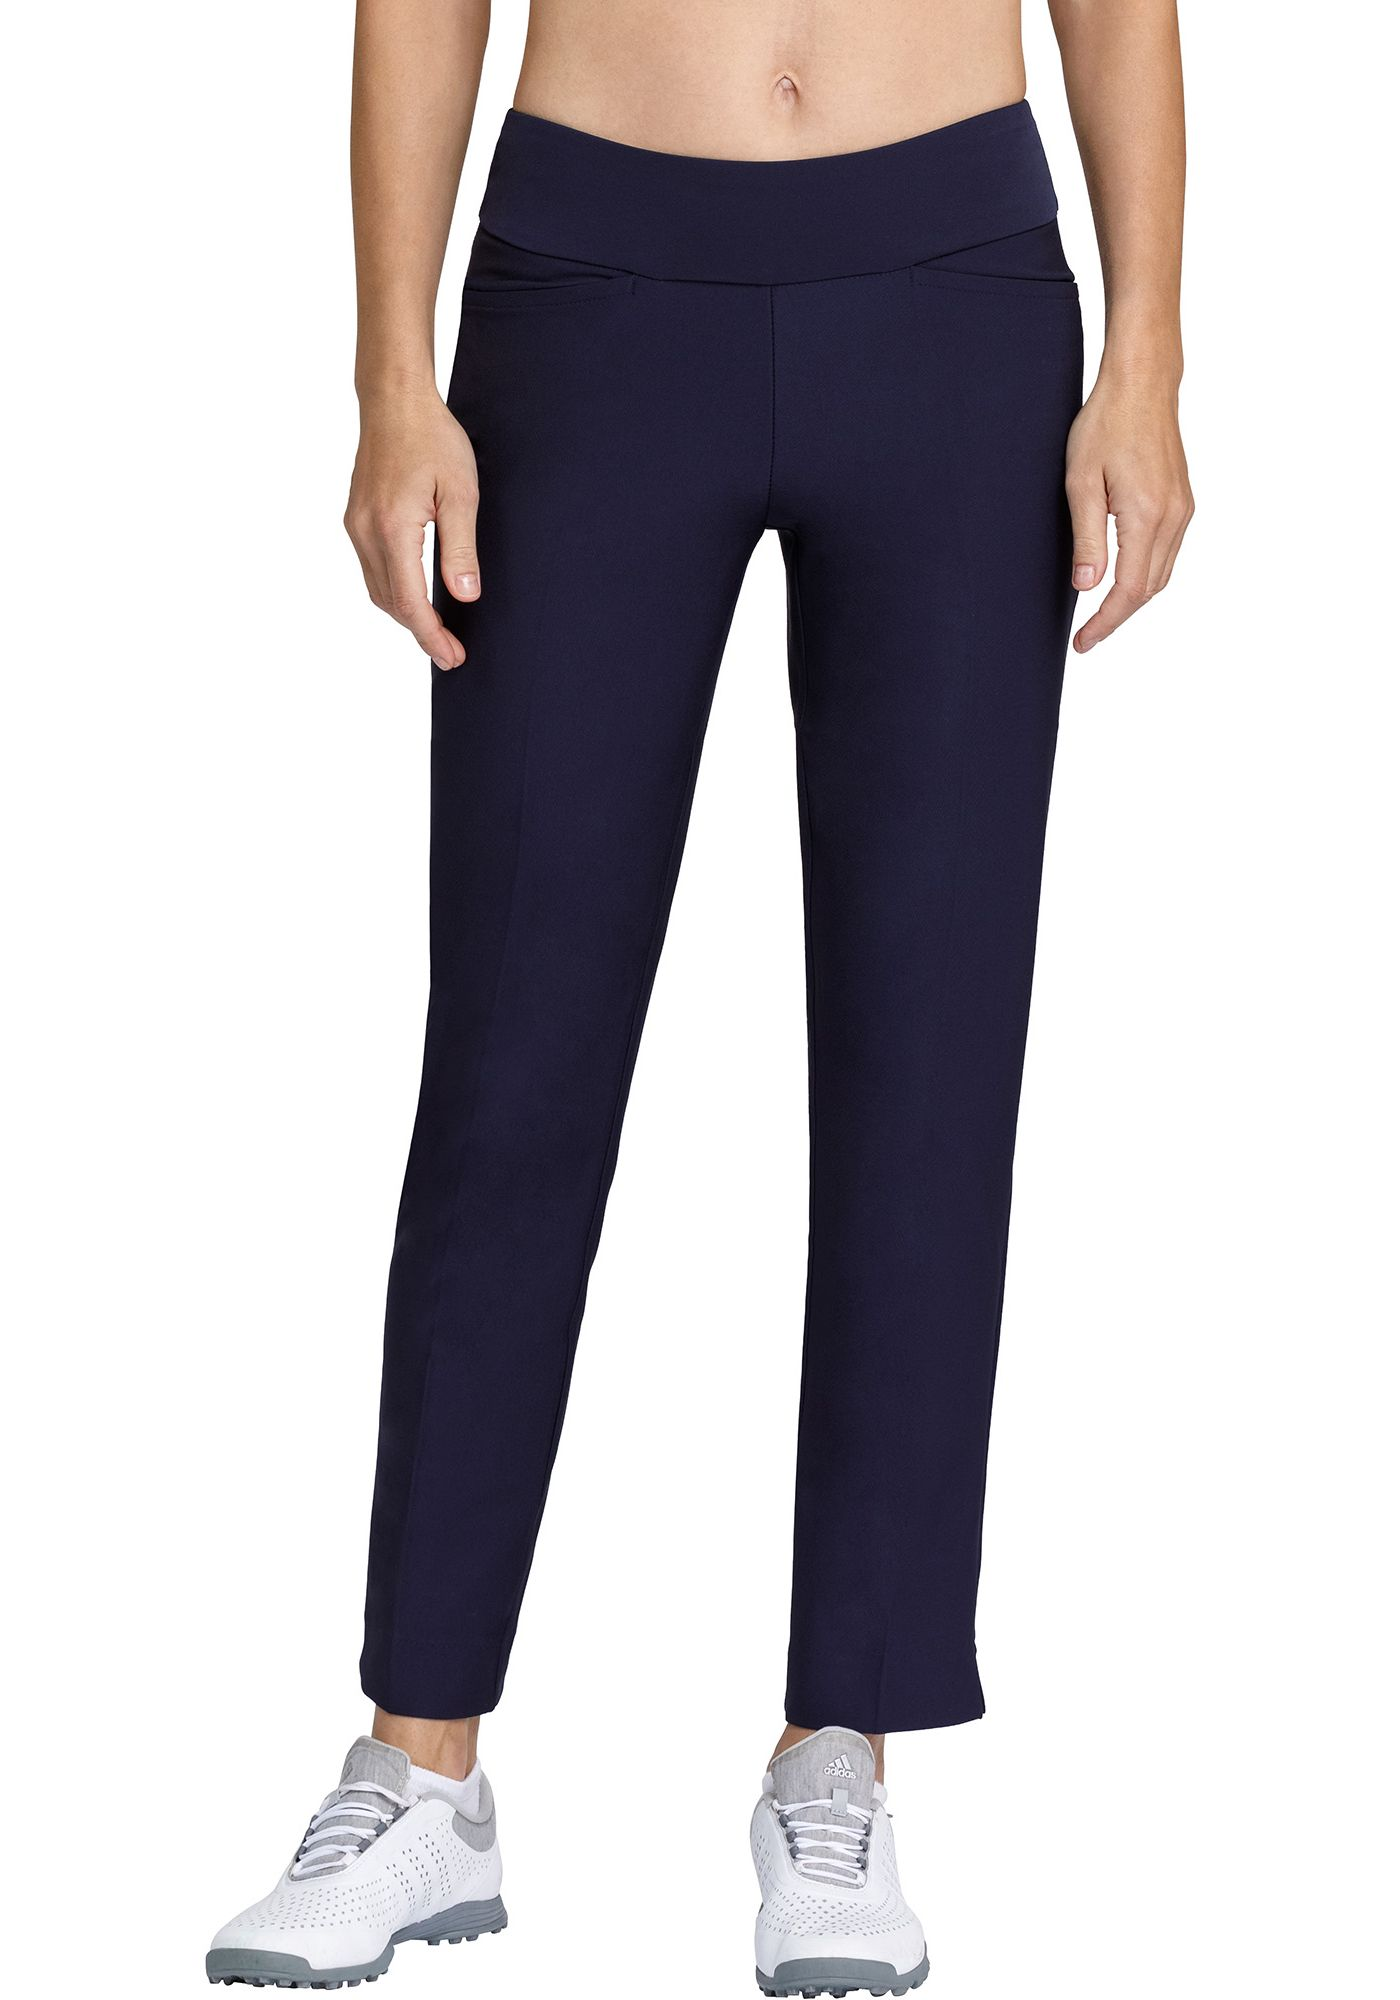 Tail Women's Pull On Ankle Golf Pants